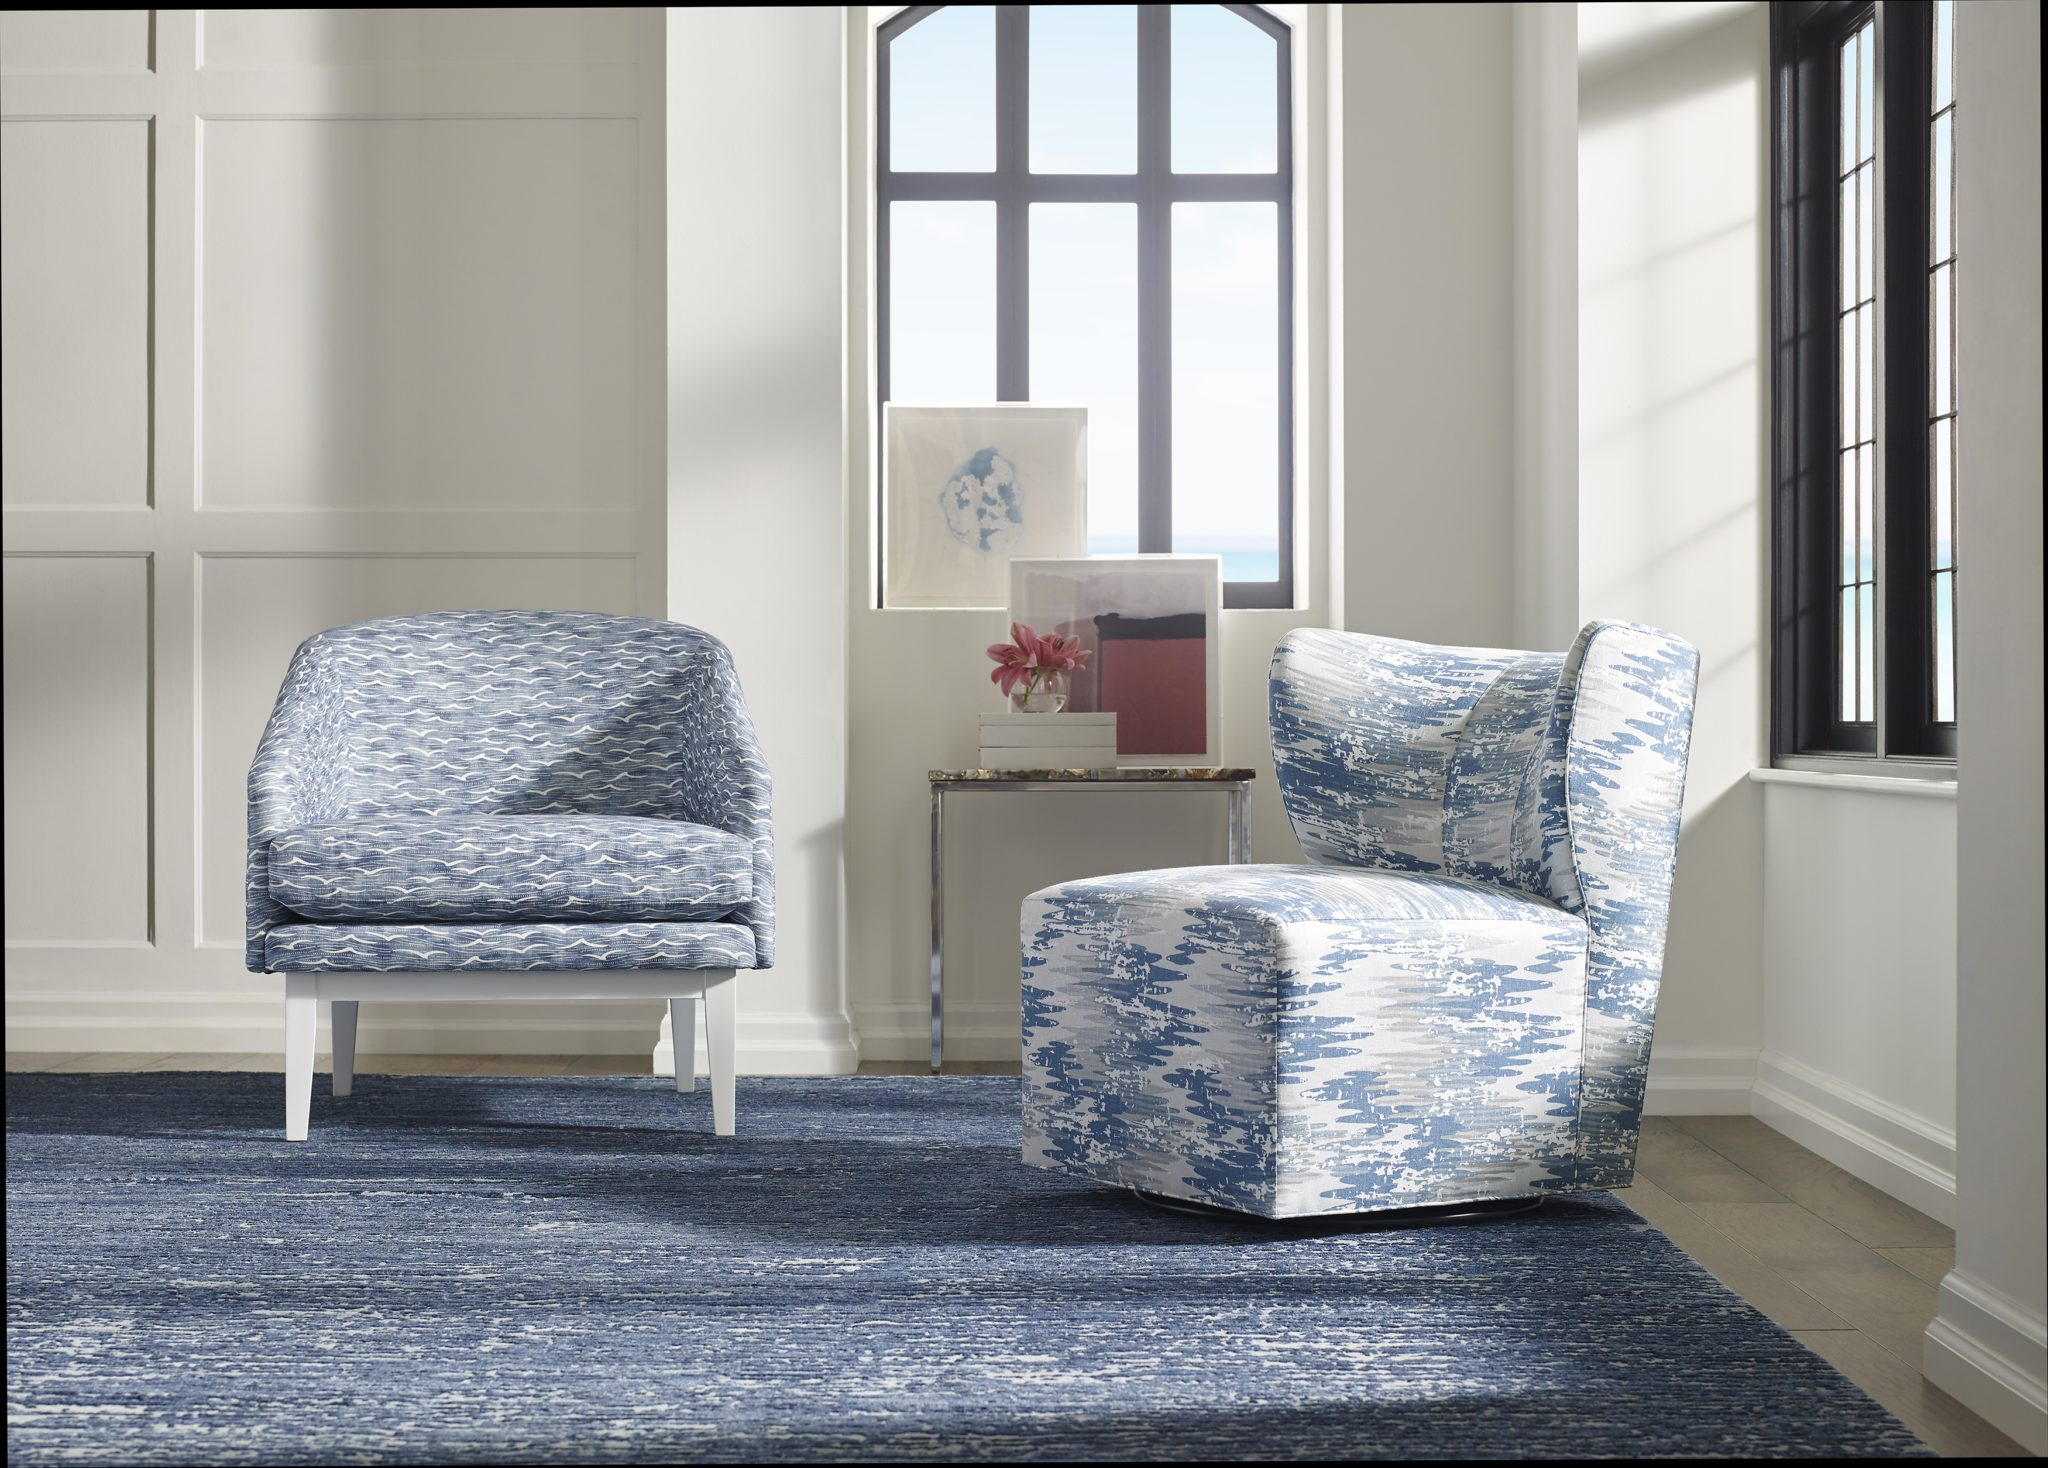 In this sitting area scene, the left side chair is the Hanover chair in Angelus in Pacific, while the chair to the right is the Sedgewick Slipper Chair in Whitecap in River. The side table is again the Arvada side table. The rug is Slant in Surfside.